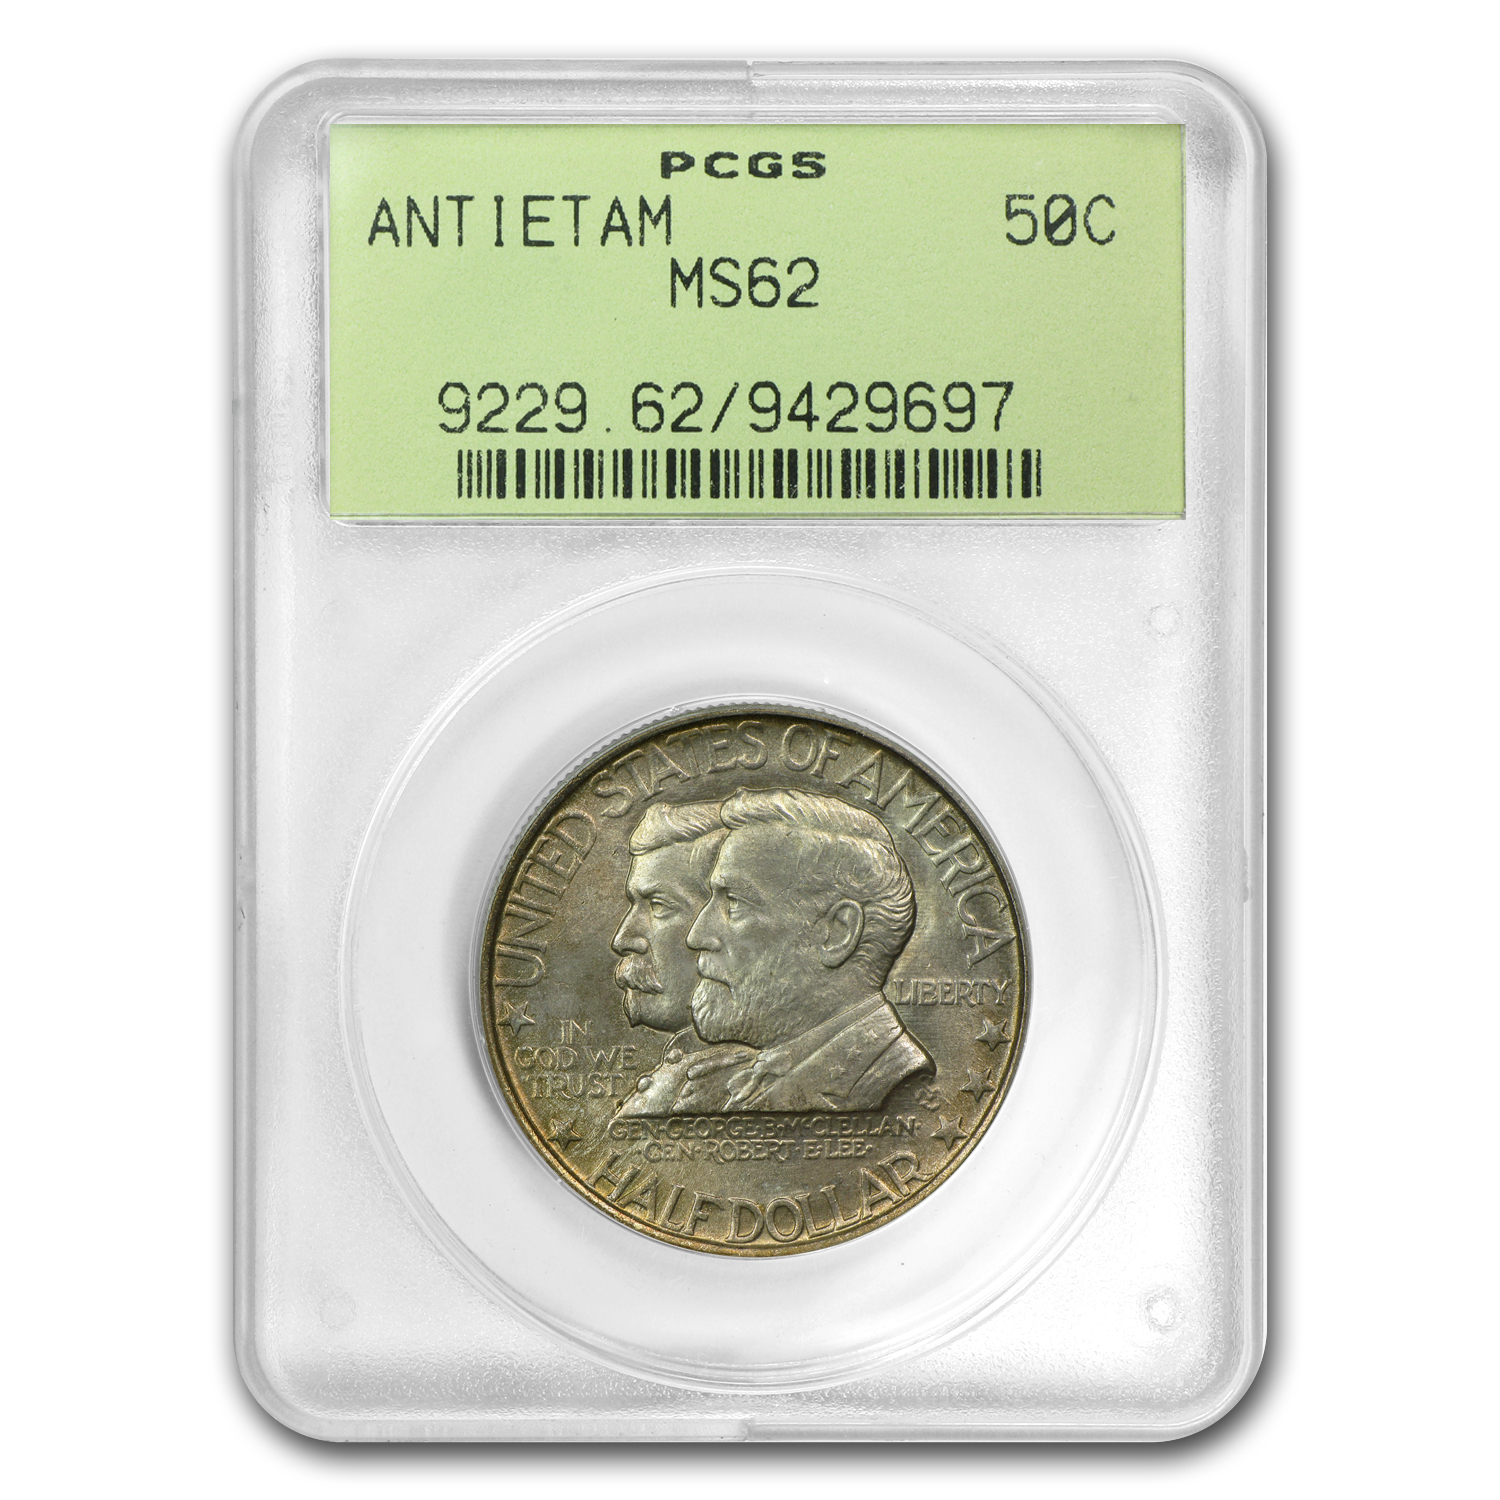 1937 Battle of Antietam Anniversary Half Dollar MS-62 PCGS